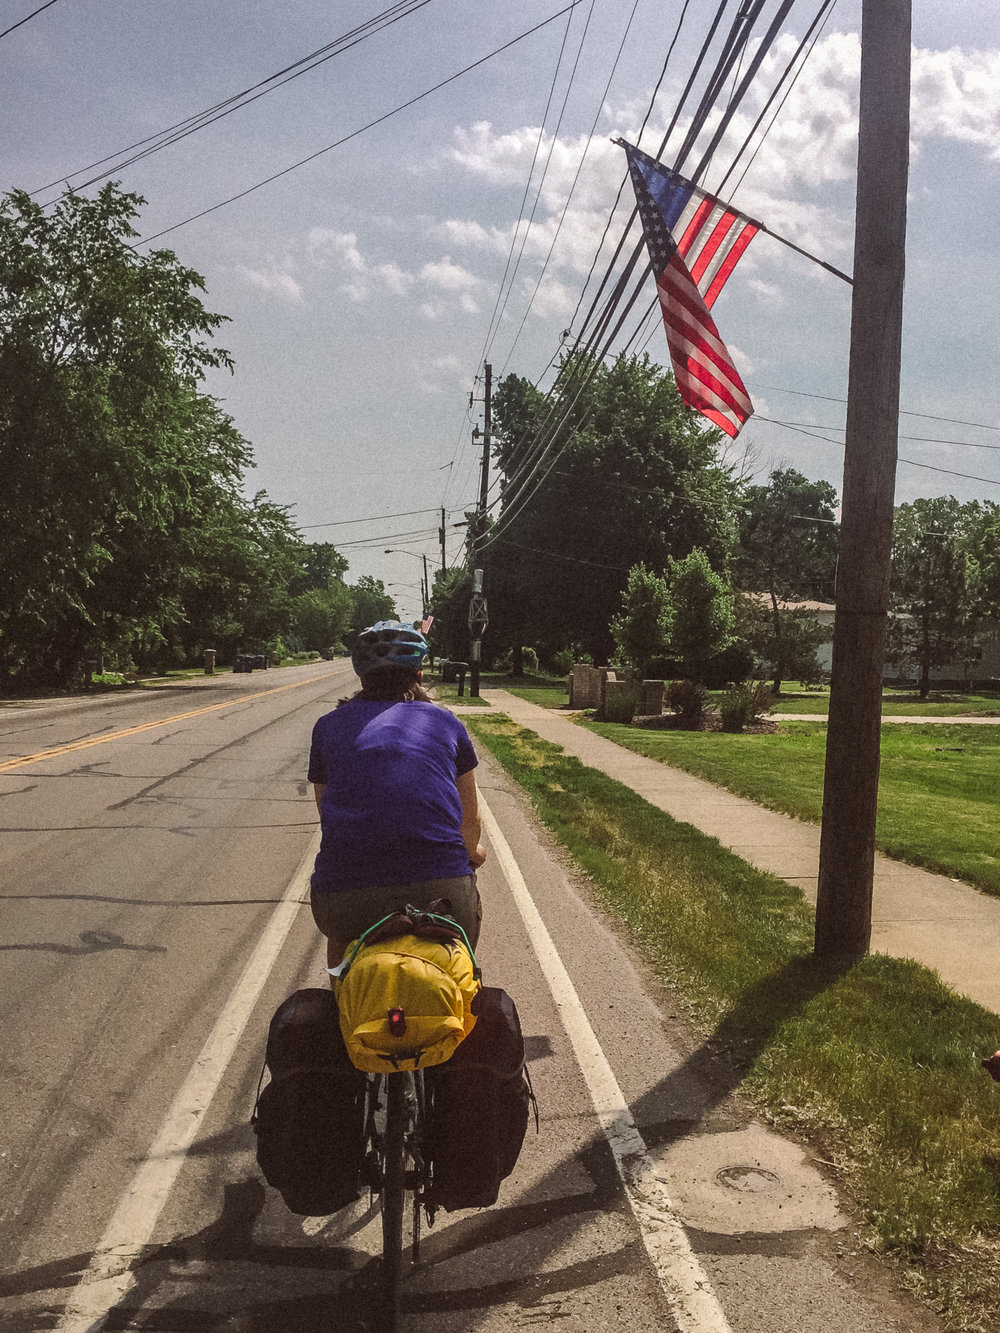 Joelle rocking life in the bumpy, crusty bike lane. Vermillion, OH